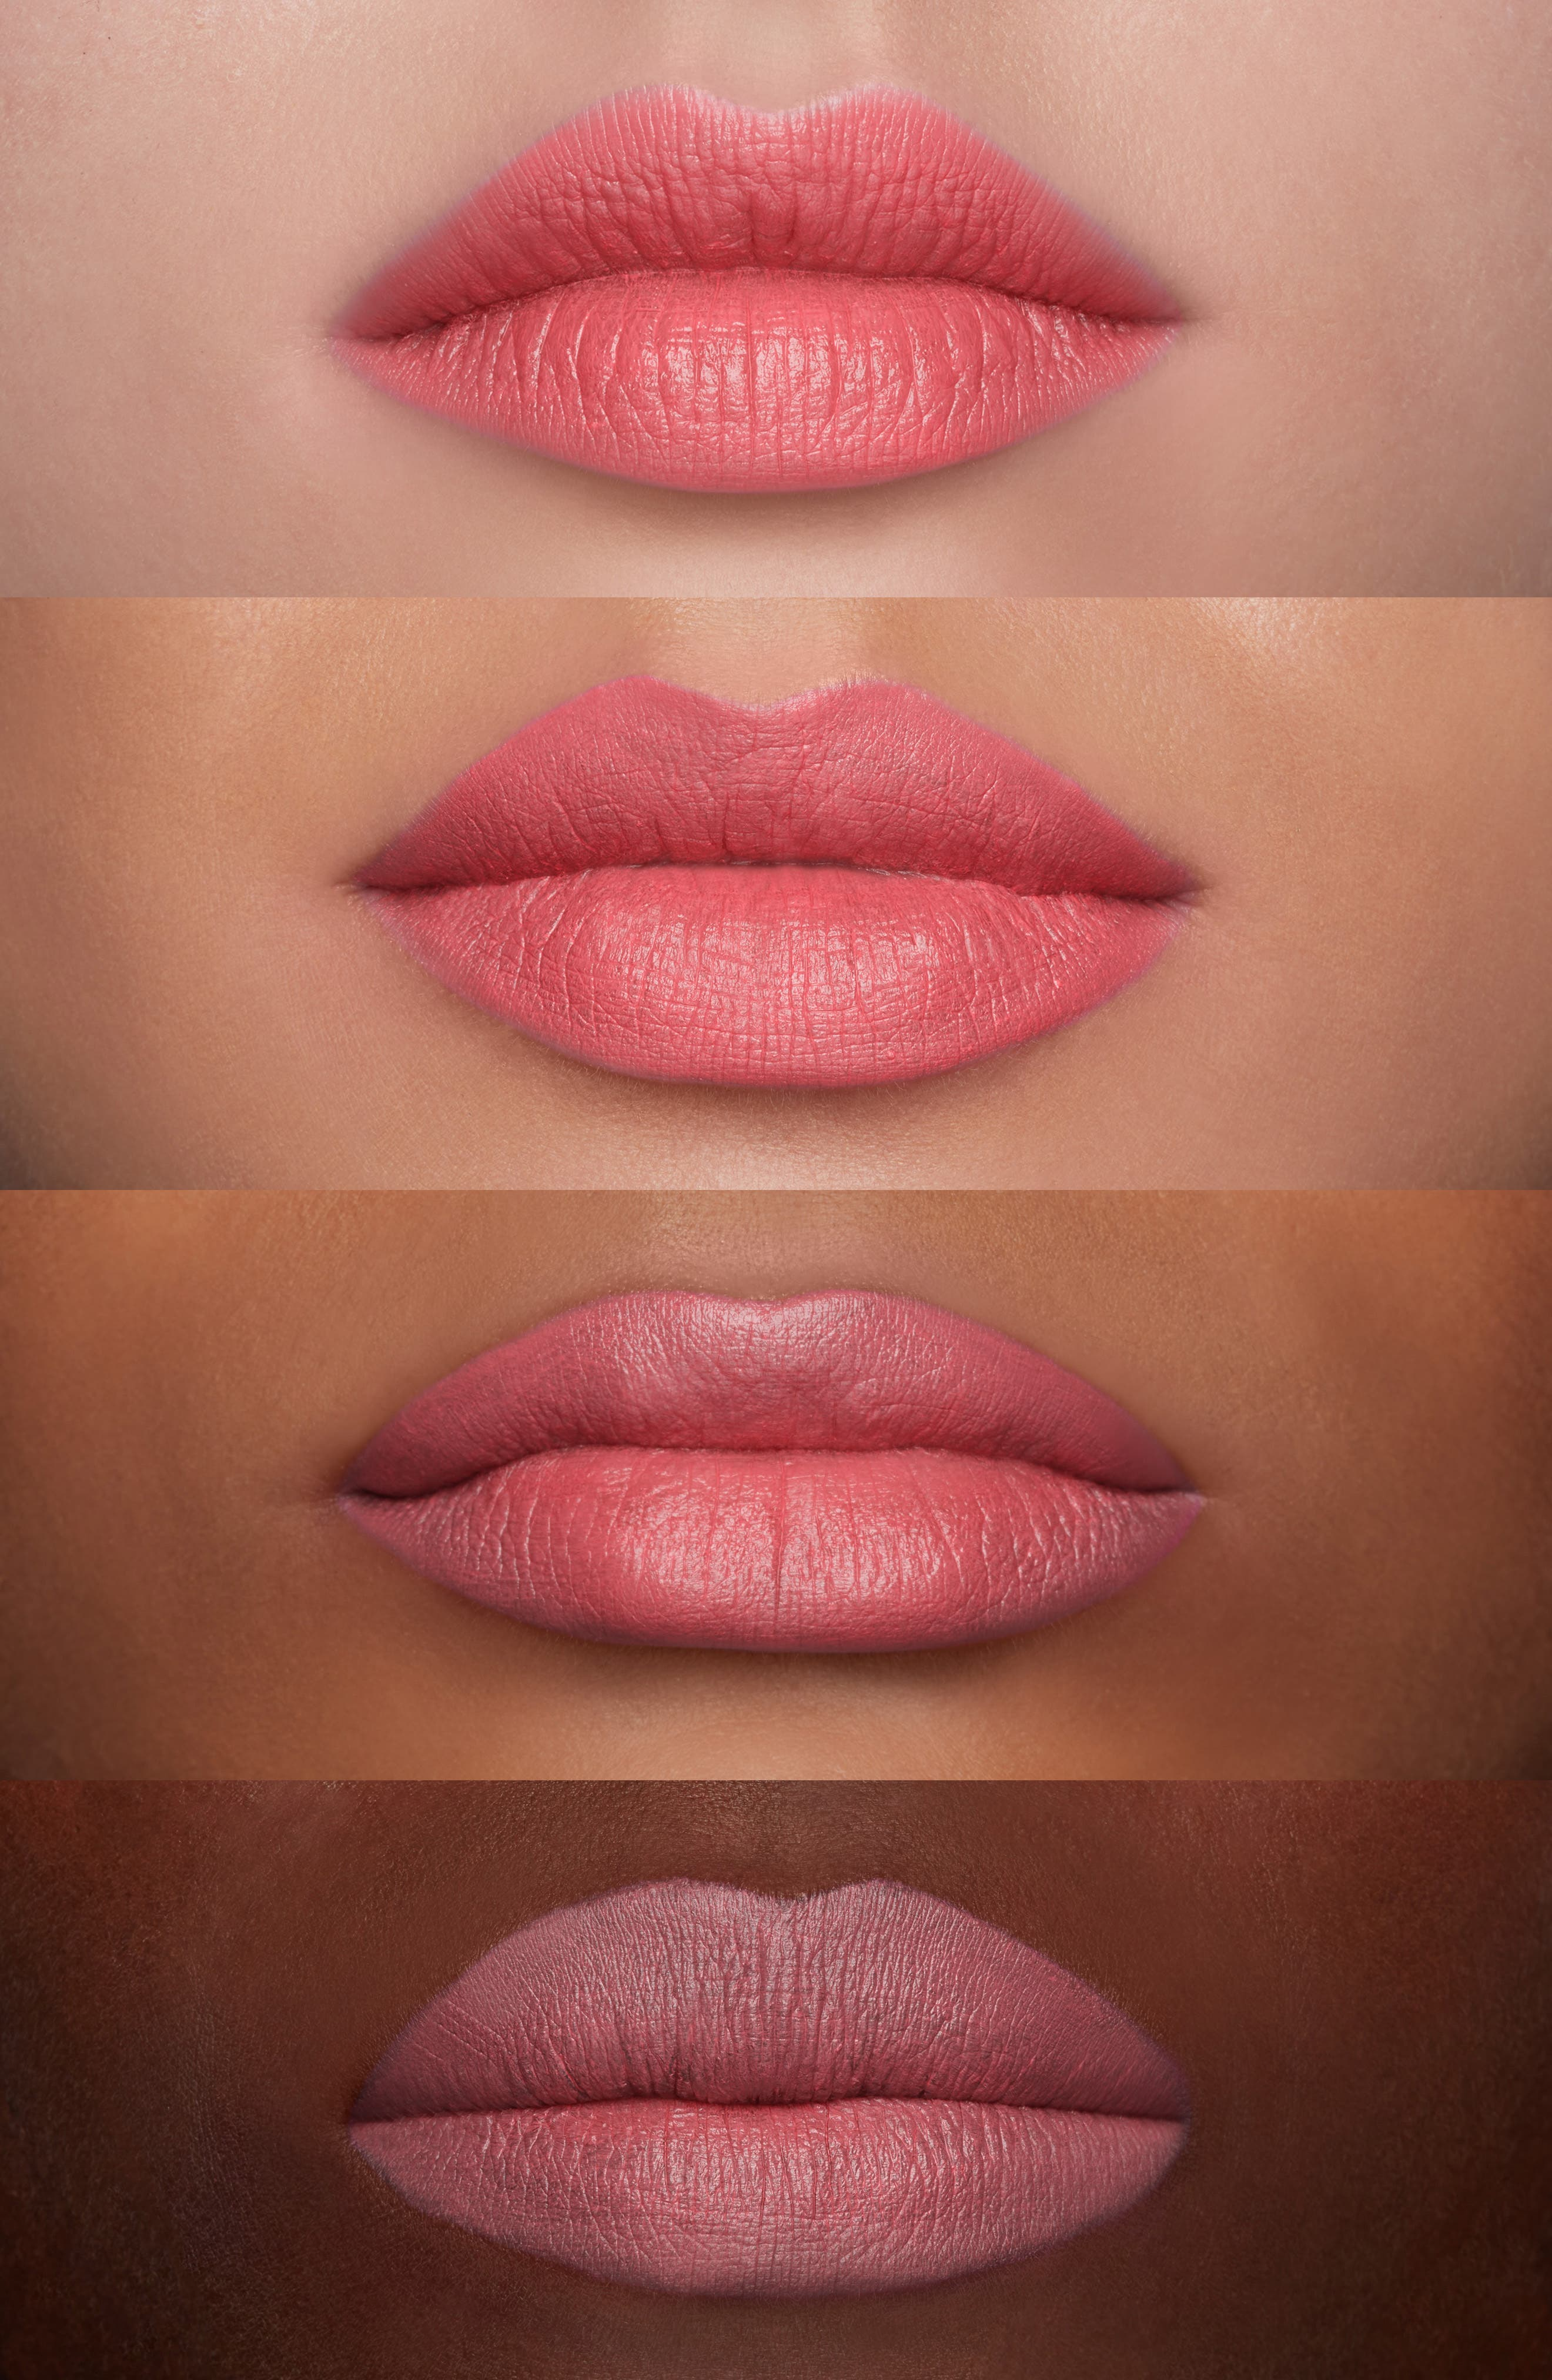 MAC COSMETICS,                             MAC Year of the Dog Lipstick,                             Alternate thumbnail 2, color,                             650